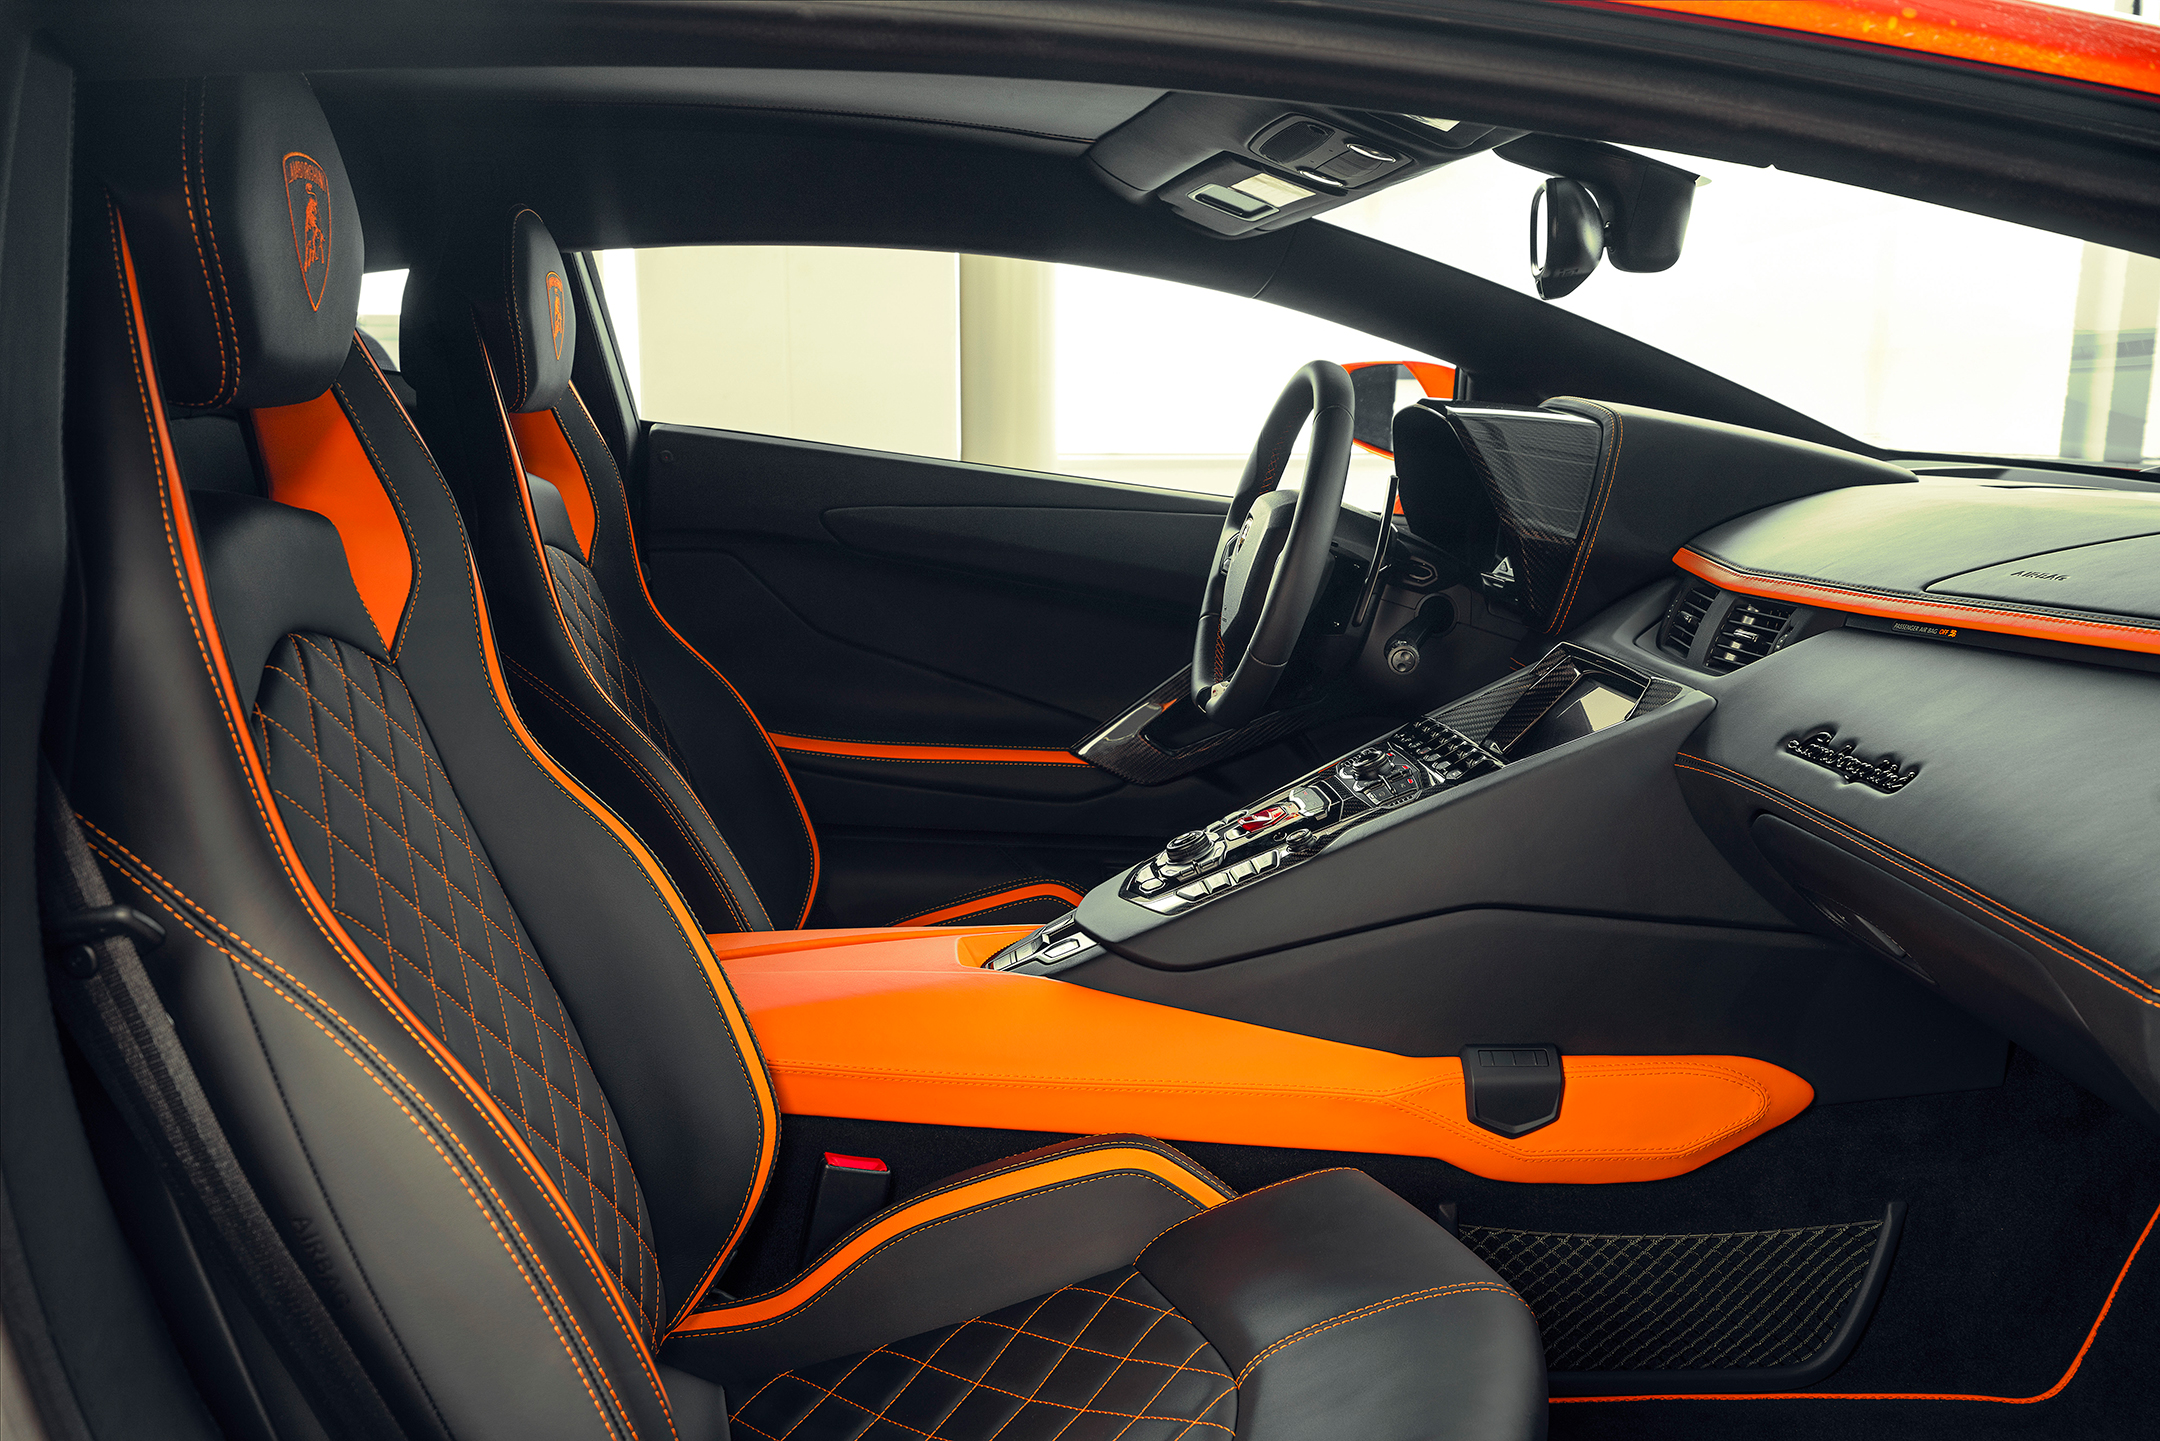 Lamborghini one-off Aventador S by Skyler Grey Art - 2019 - interior / intérieur